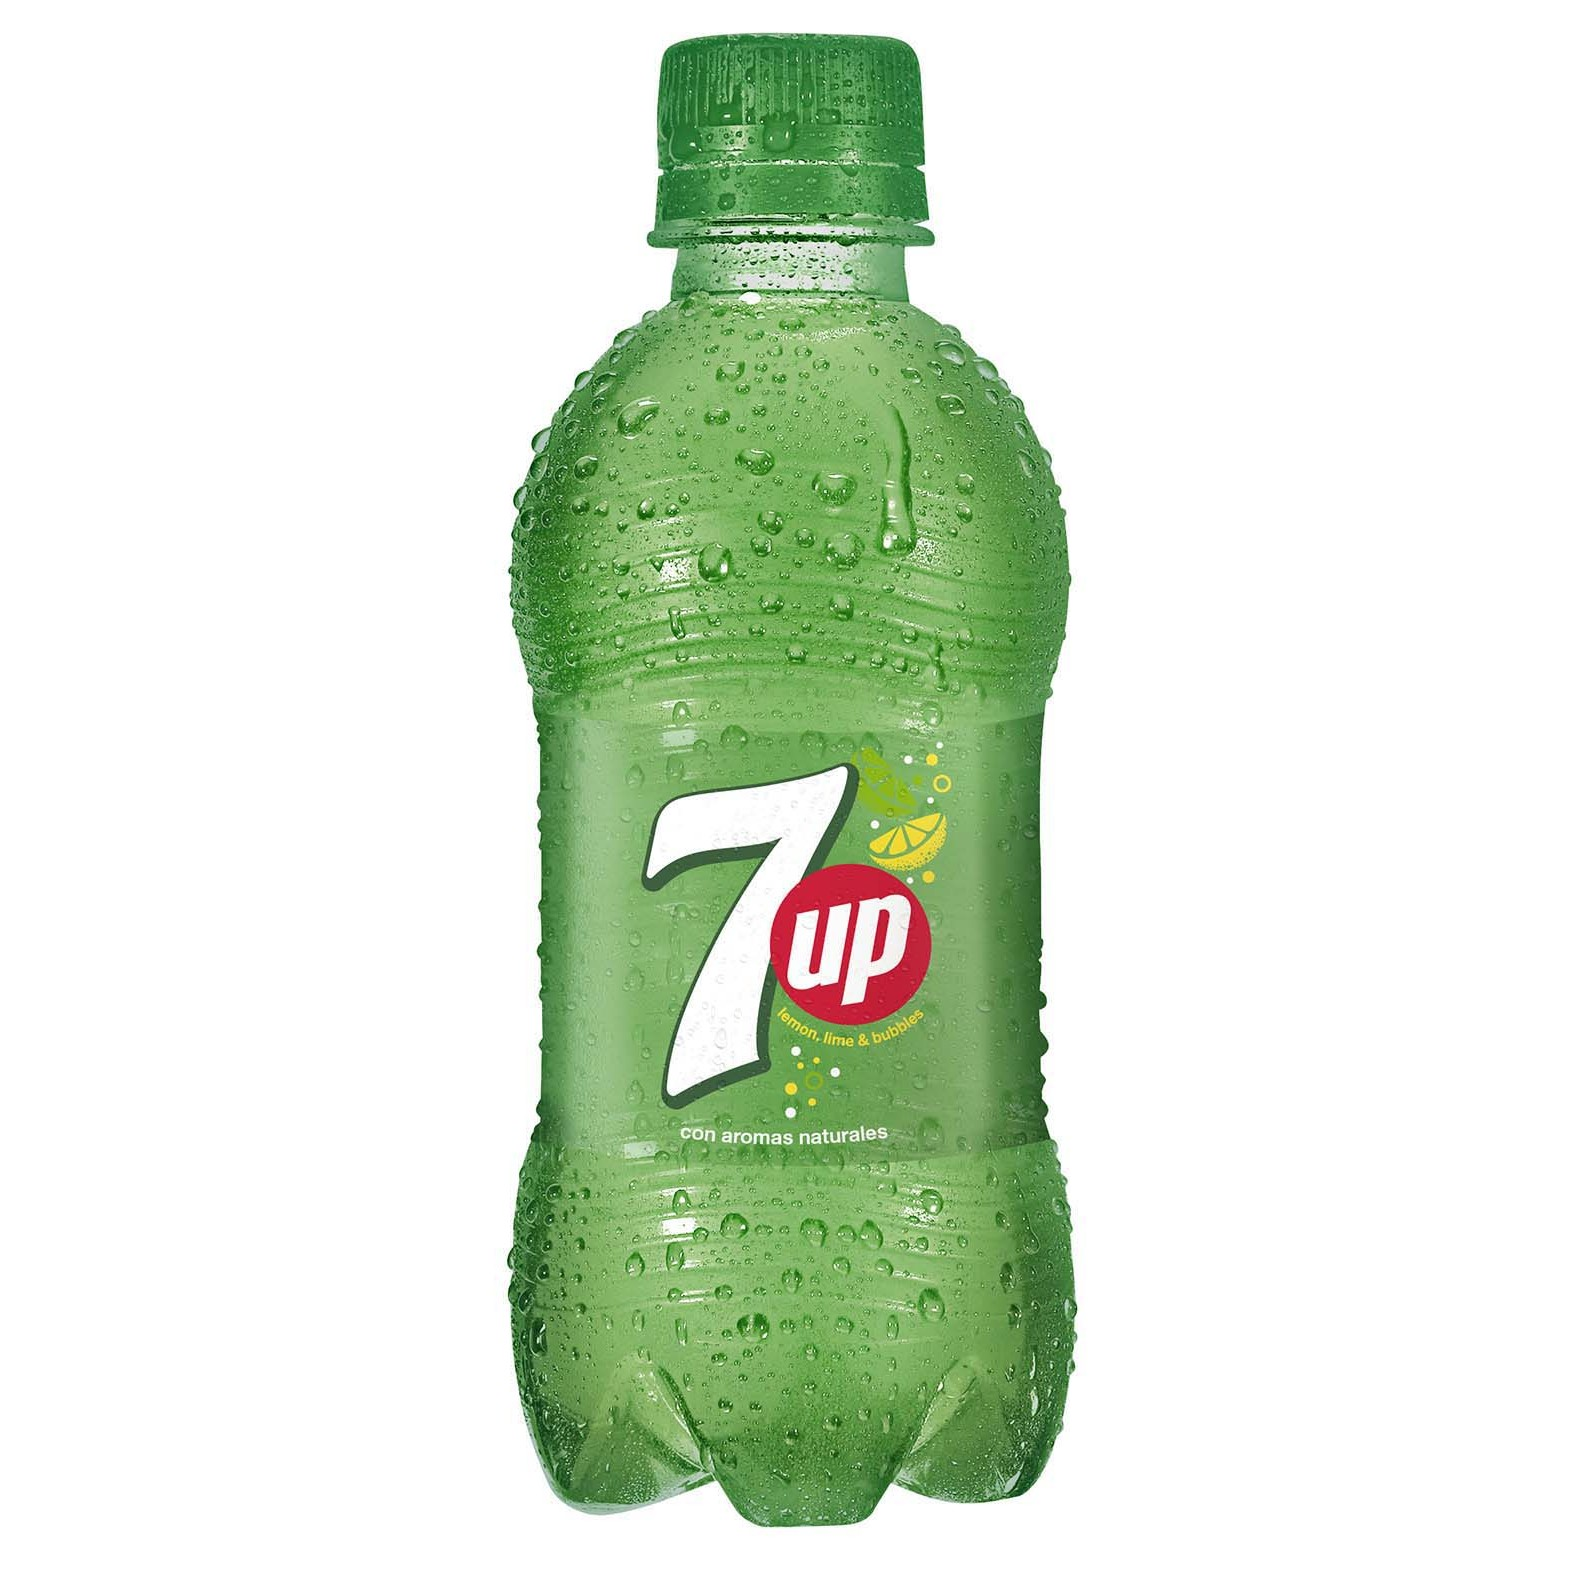 7up lima lima limon junior de 33cl. en botella